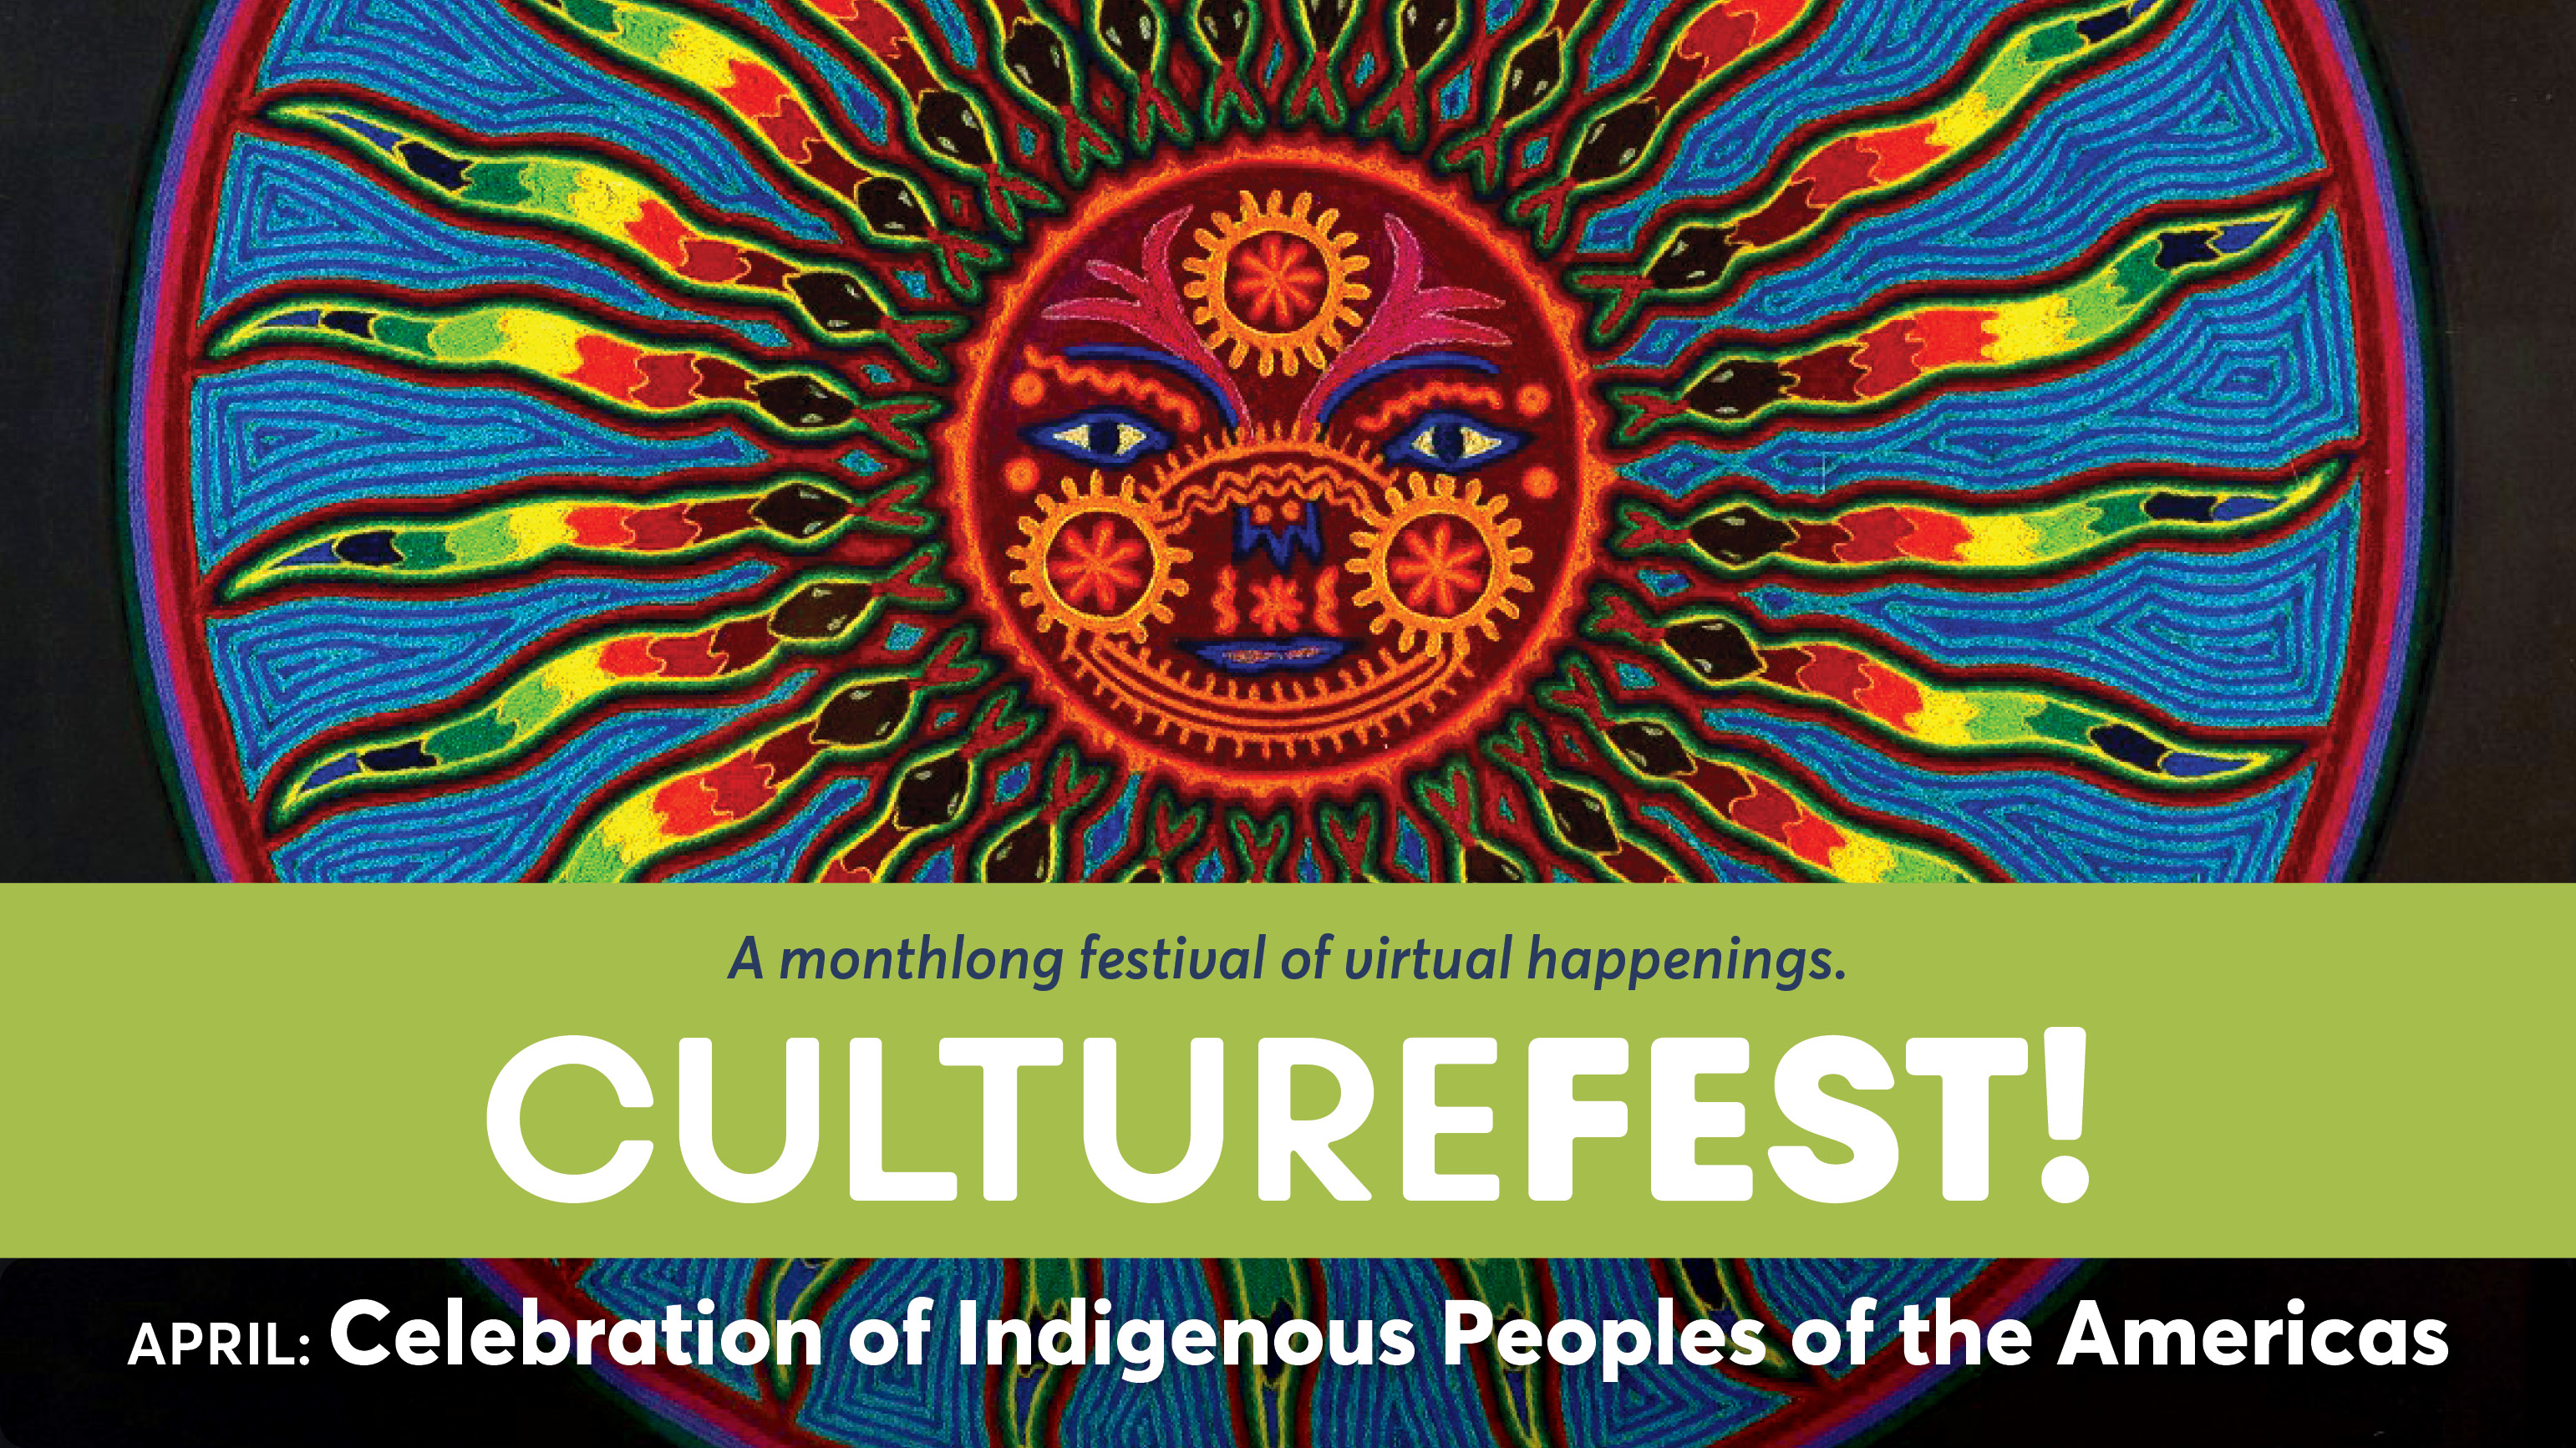 CultureFest! Celebration of Indigenous Peoples of the Americas